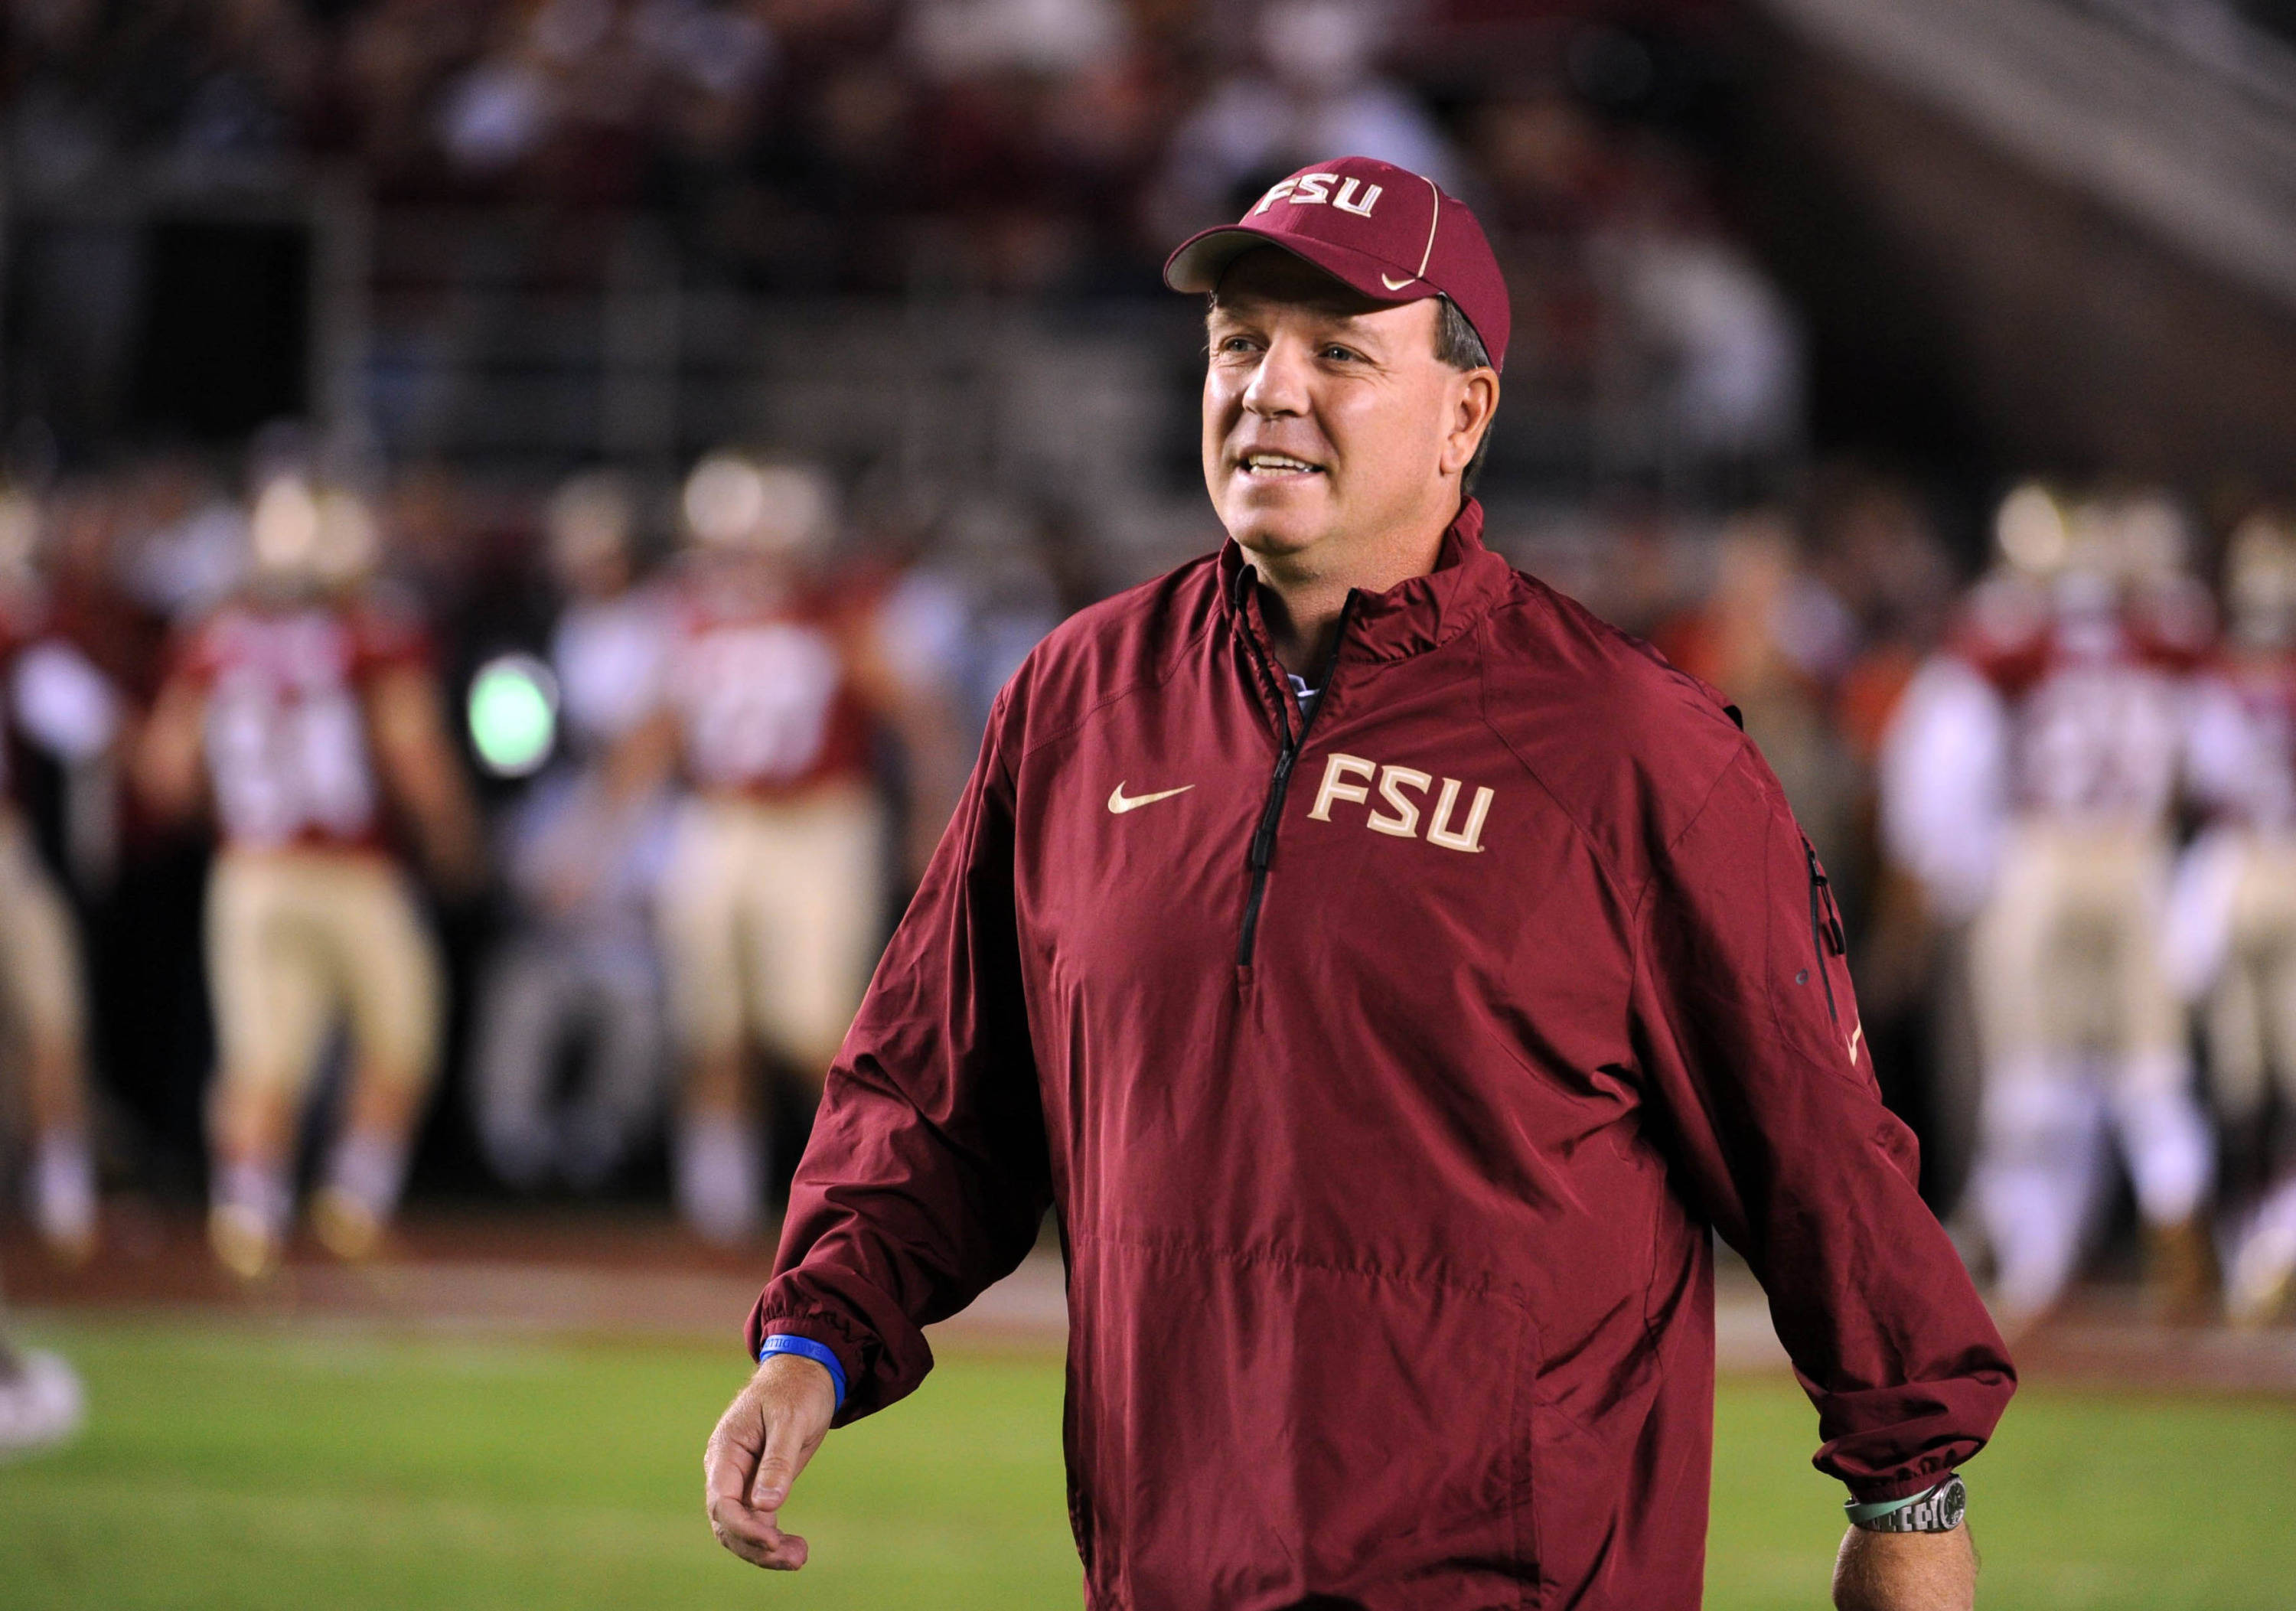 Florida State Seminoles head coach Jimbo Fisher before the start of the game against the Miami Hurricanes at Doak Campbell Stadium. Mandatory Credit: Melina Vastola-USA TODAY Sports